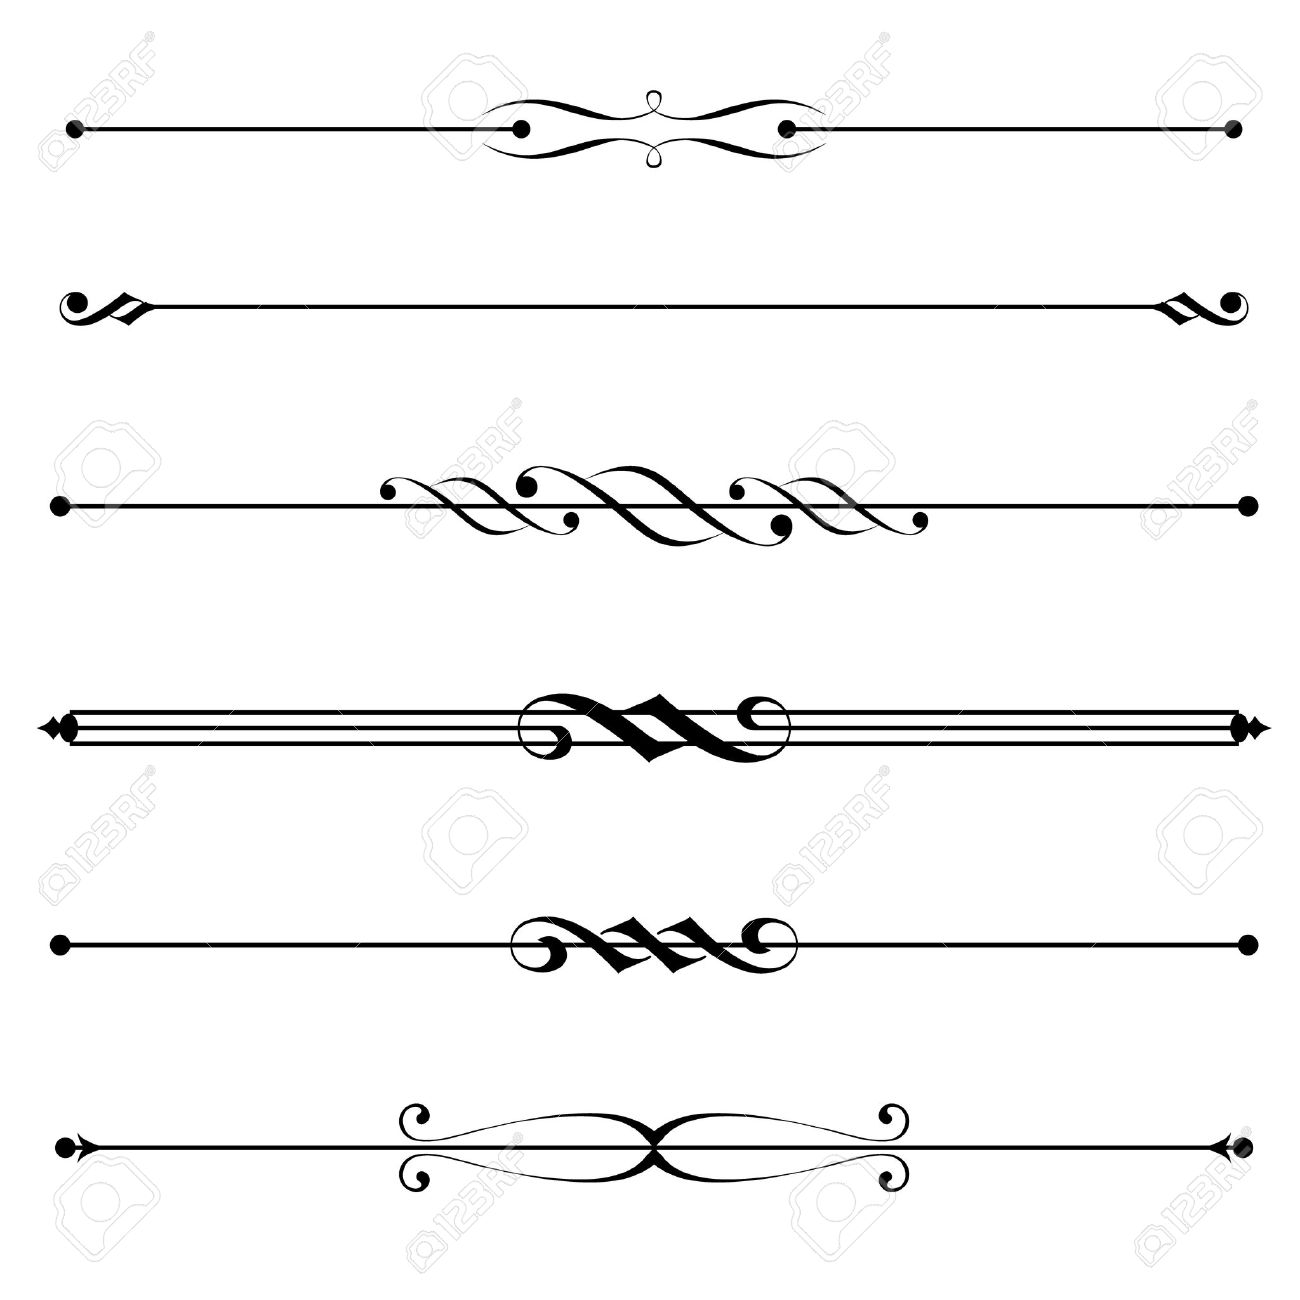 Vector Set Of Decorative Divider, Elements, Border Royalty Free ...